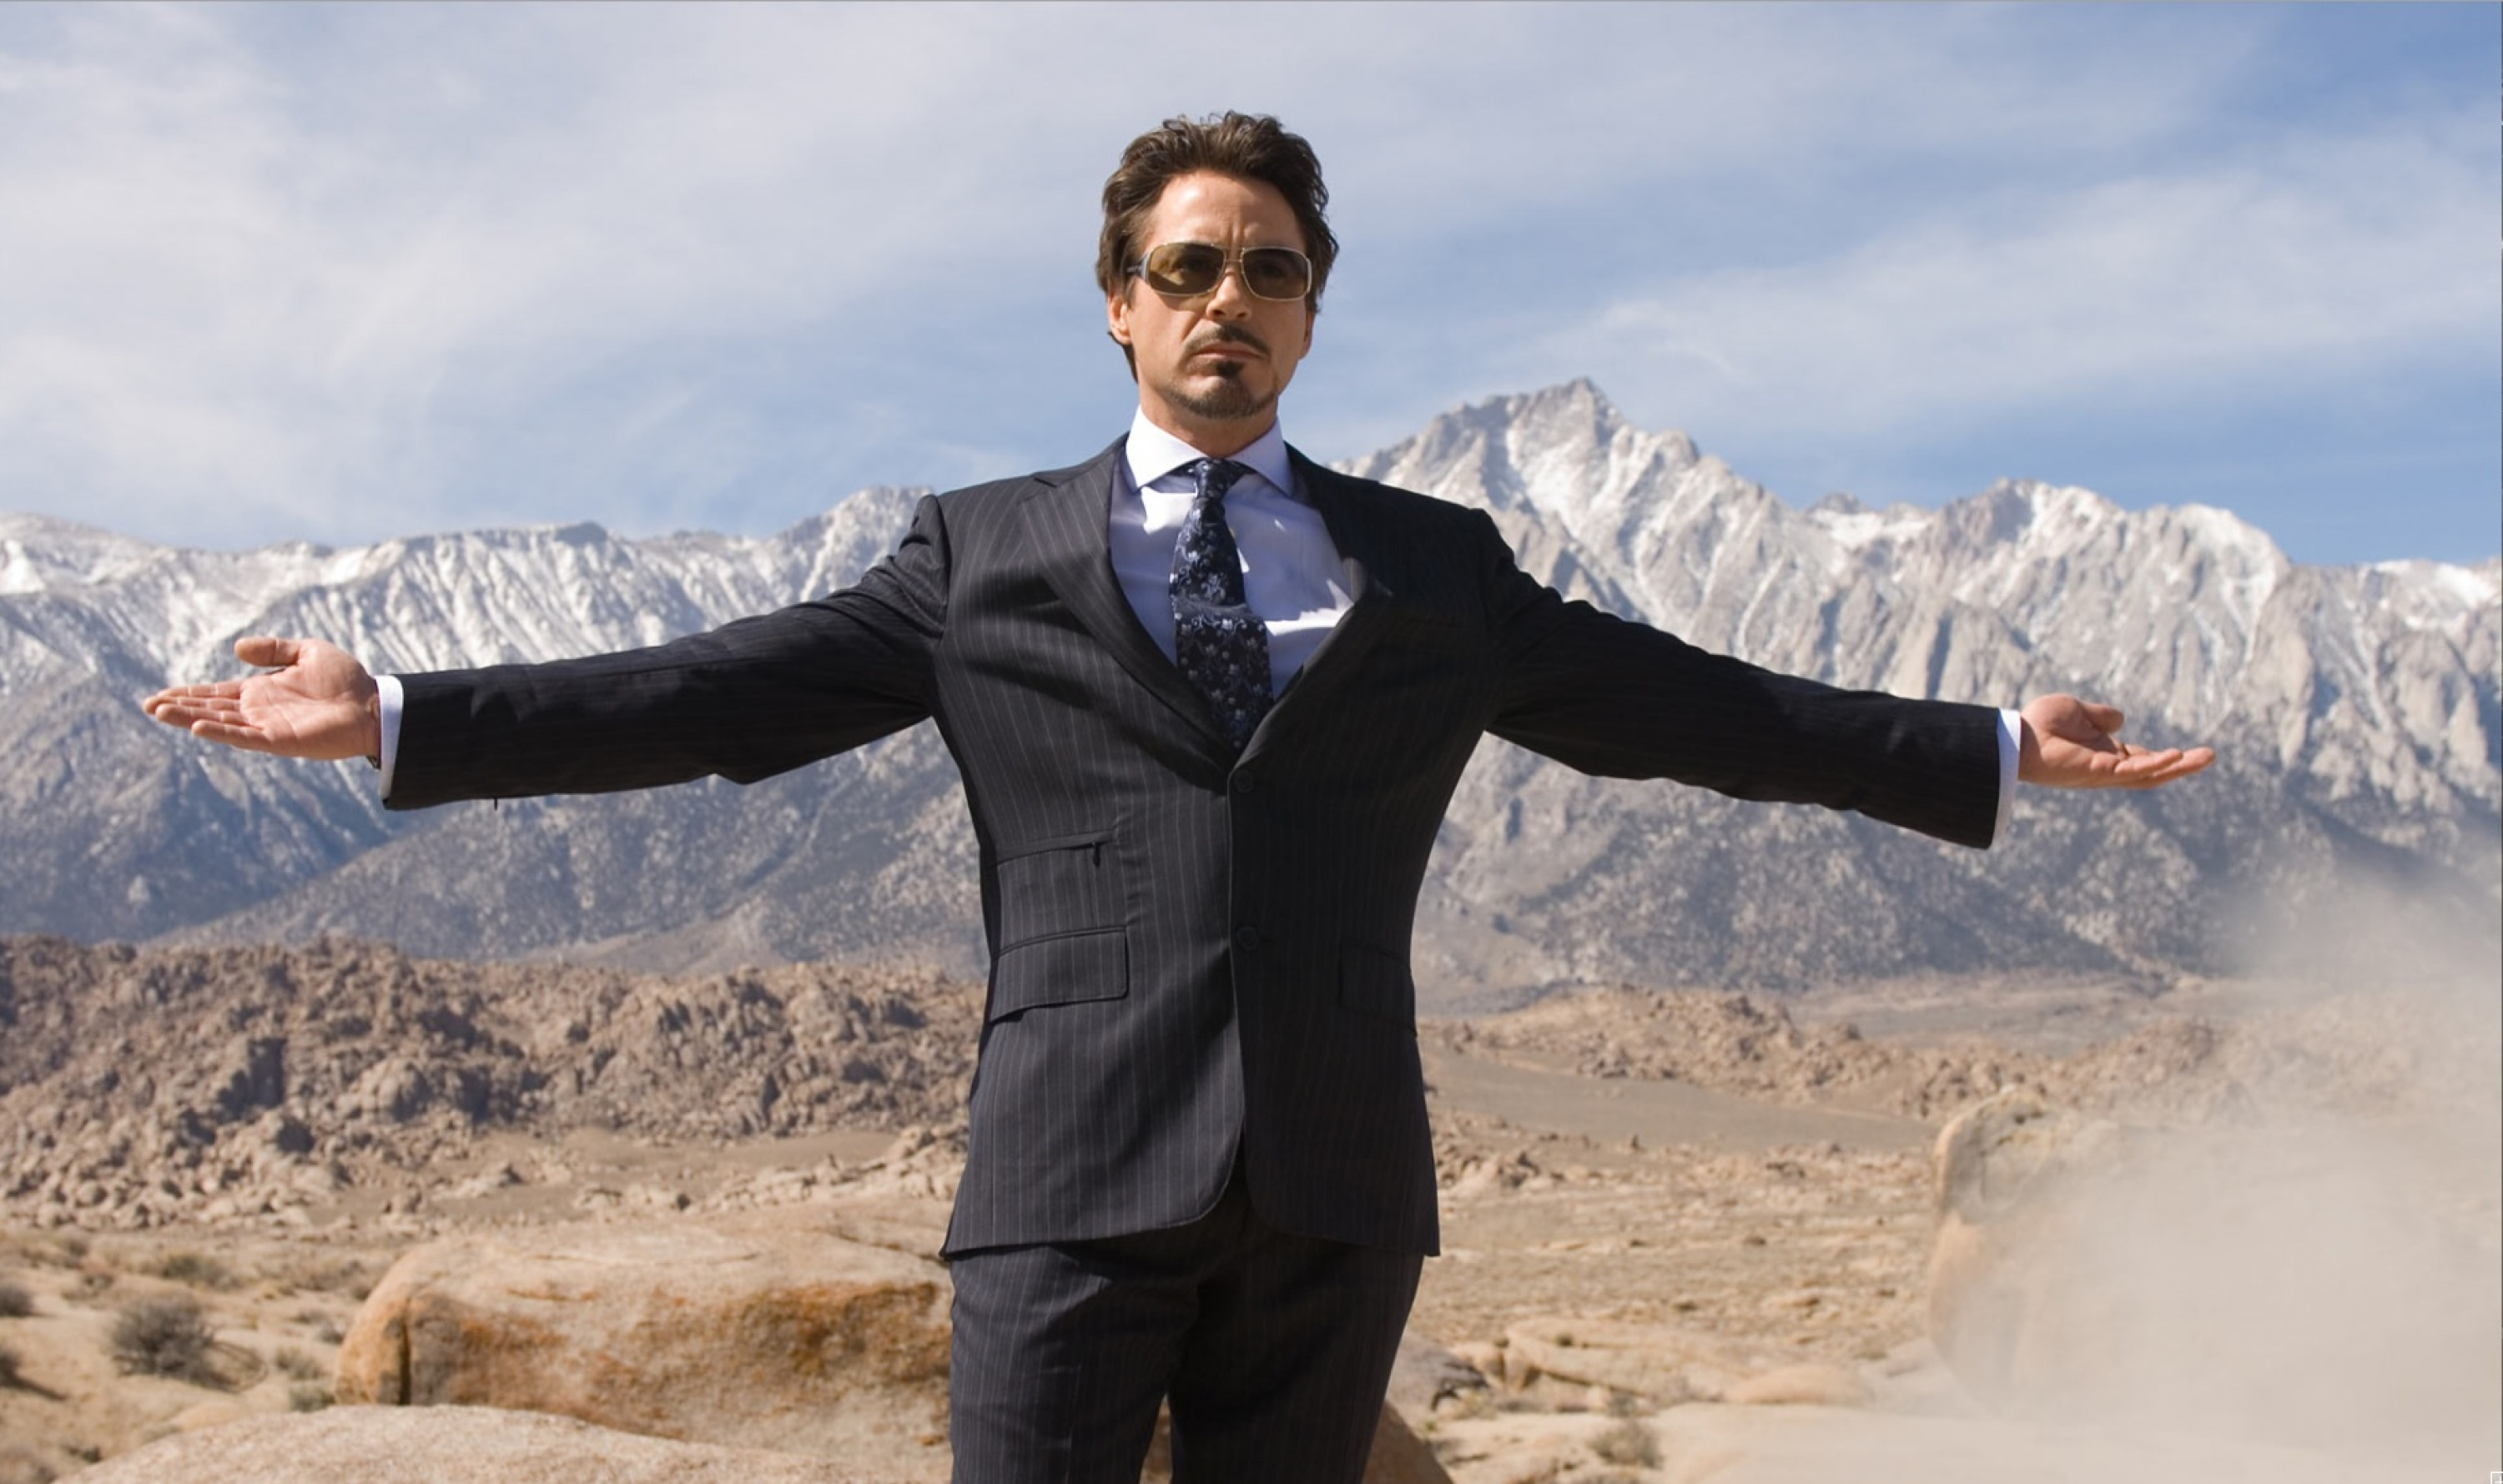 Tony Stark's evolution between Iron Man and Infinity War is why the MCU works